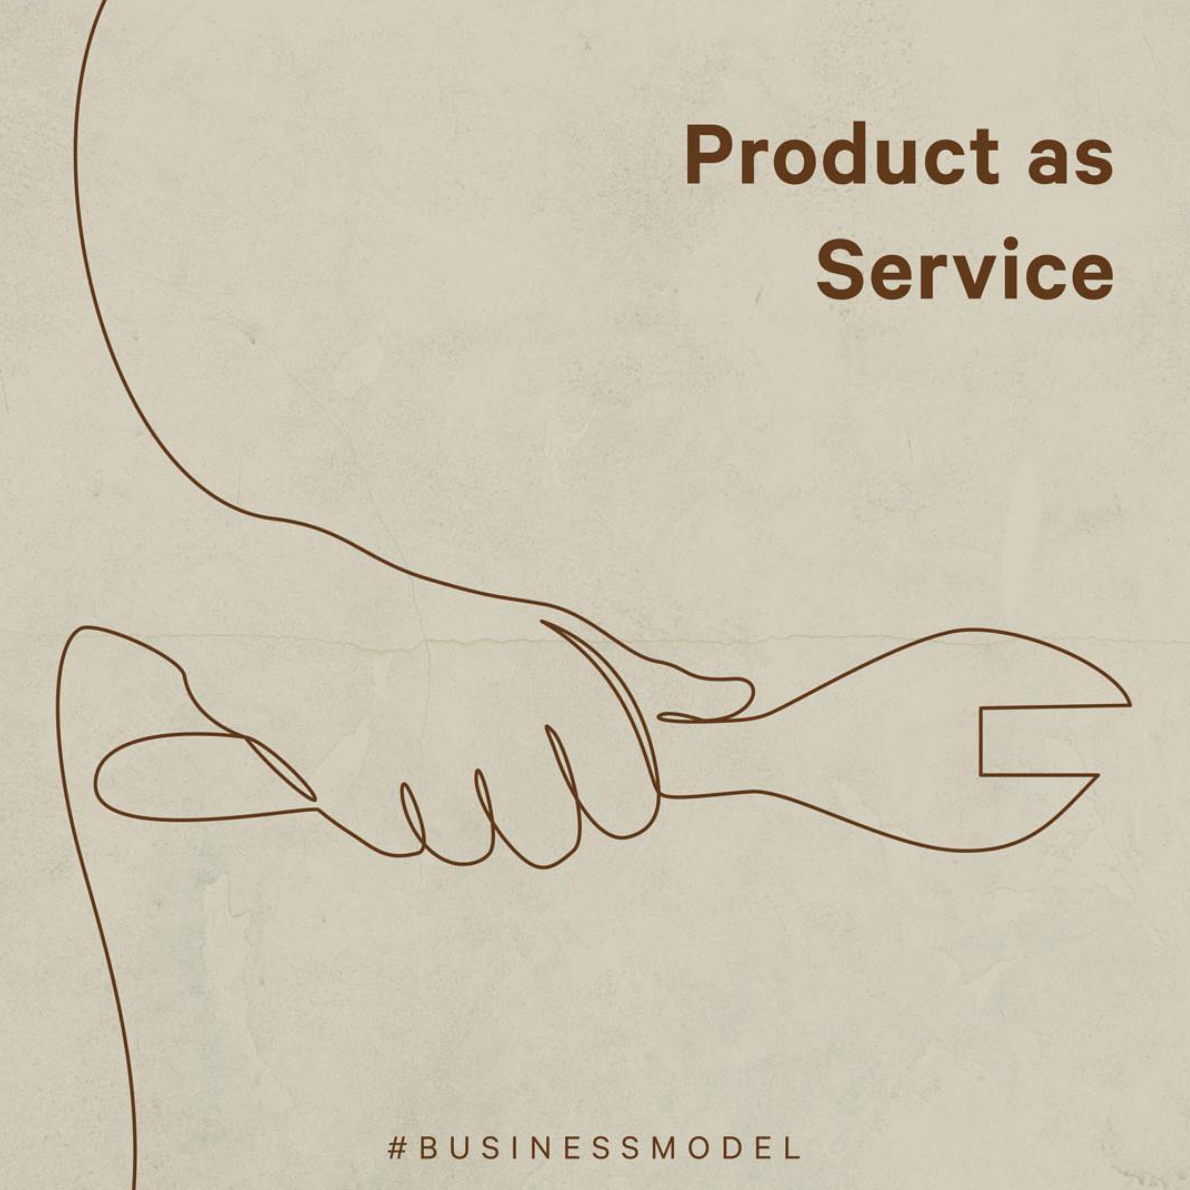 Product as Service - As the world becomes more service-oriented, this concept allows enterprises to sell services or benefits, with the product acting as a mere instrument for the transaction. This means that your customers would be enjoying enhanced support and less upfront costs. Solar panels, which are an efficient source of renewable energy, are usually bought in this manner. According to Statista, the global solar industry is expected to reach $422 billion in 2022.